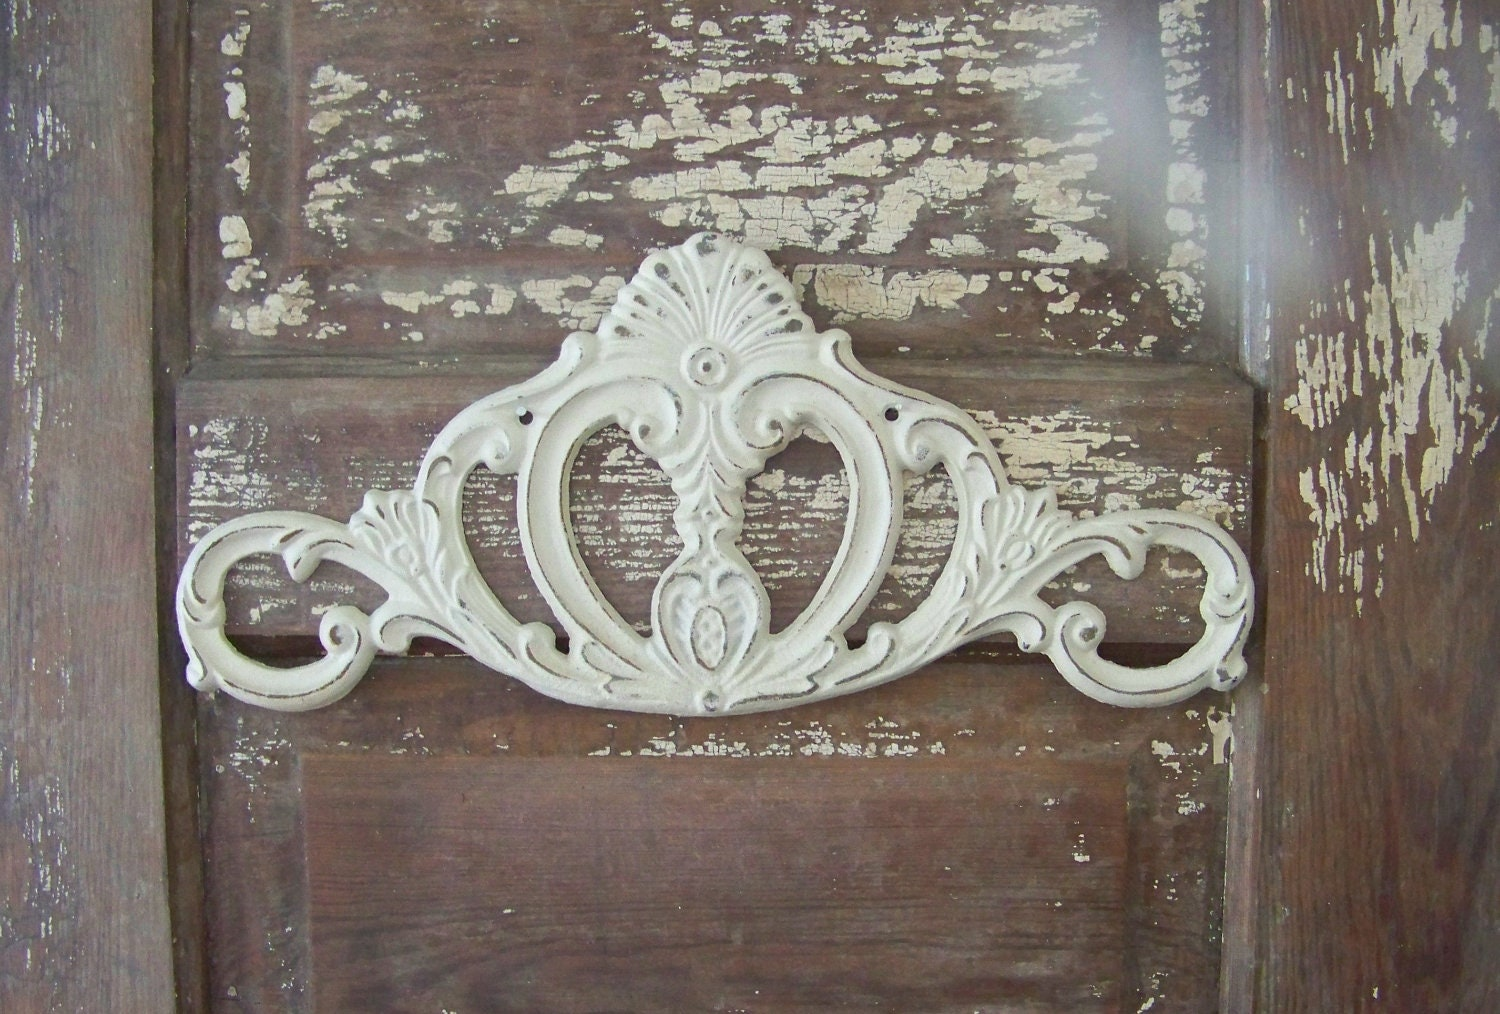 Cast iron wall home decor shabby chic scroll hanging for Shabby chic wall art